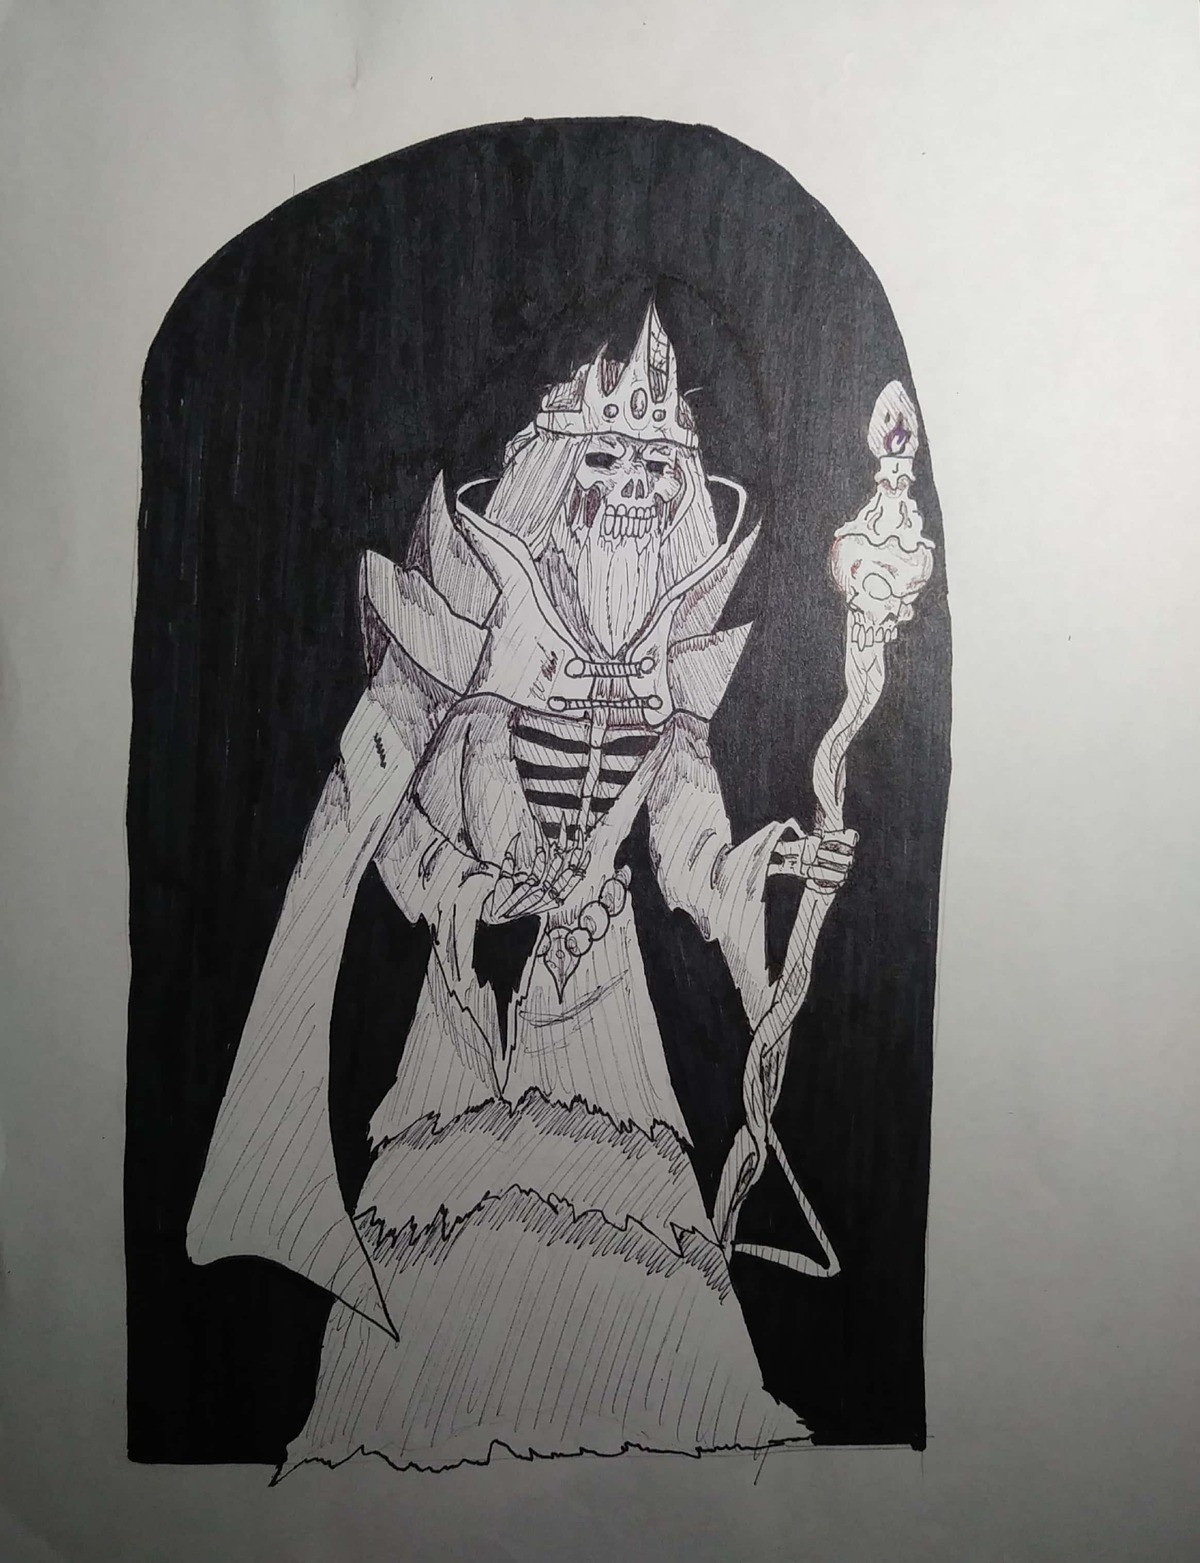 Lich Inktober Day 8 Frail. Day 8: Frail, so I thought I would draw a frail looking lich guy... Maybe he's frail but he's dapper.